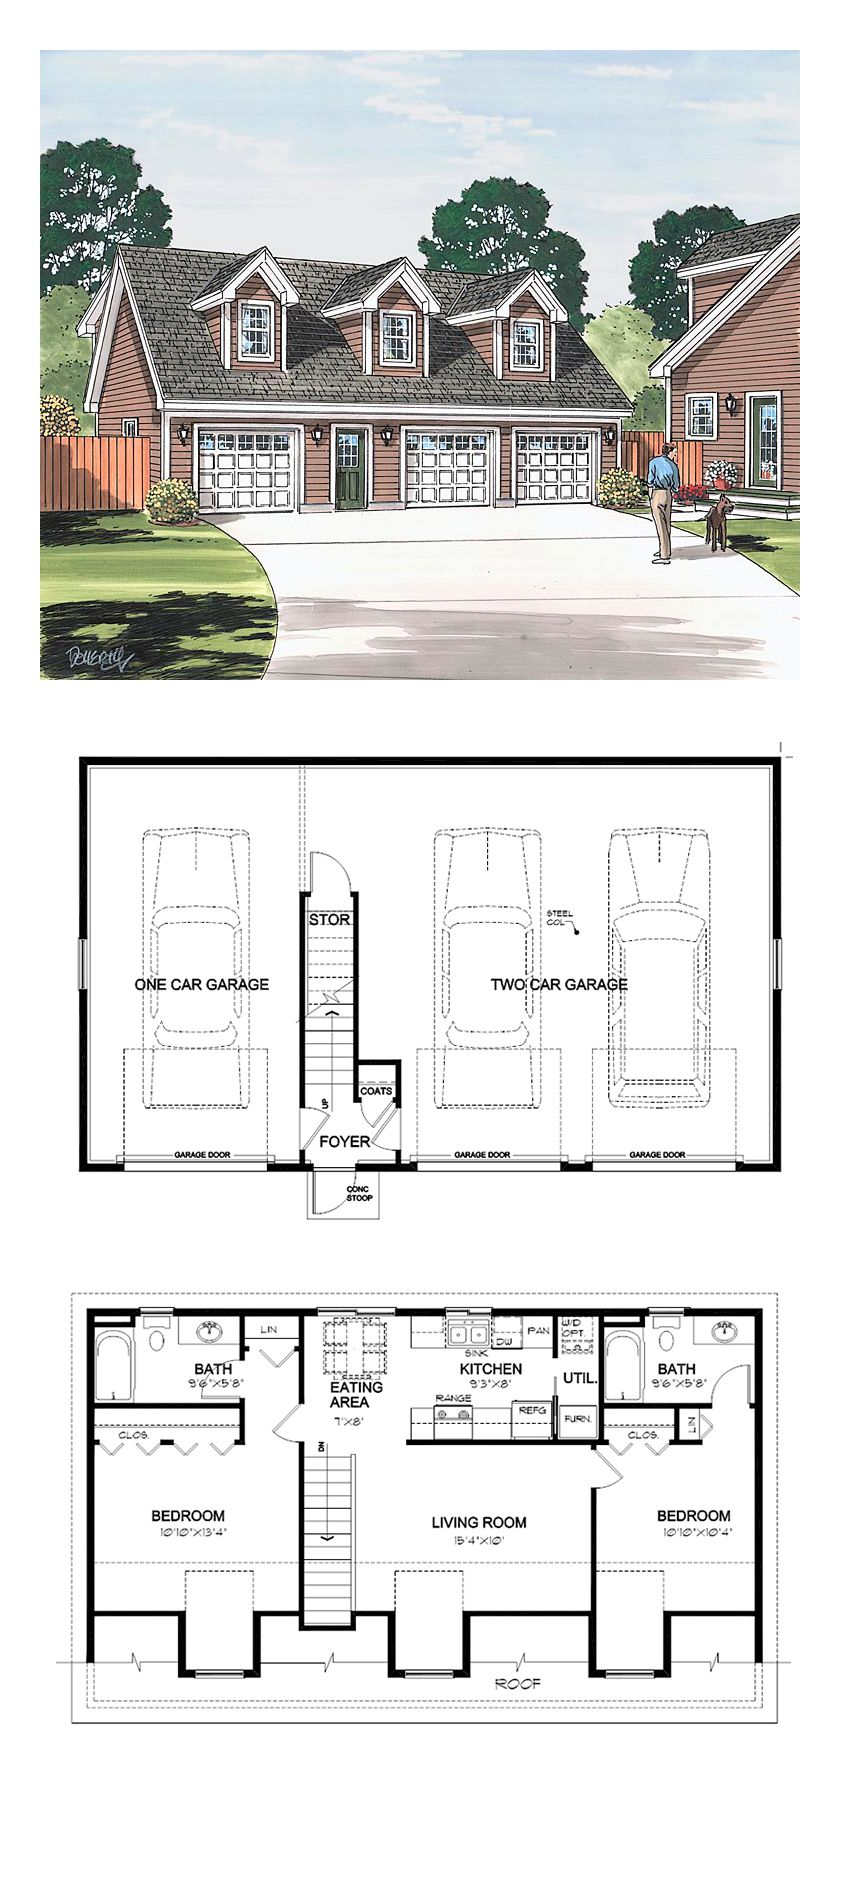 Garage Apartment Garage Apartment Plan 30032 Total Living Area 887 Sq Ft 2